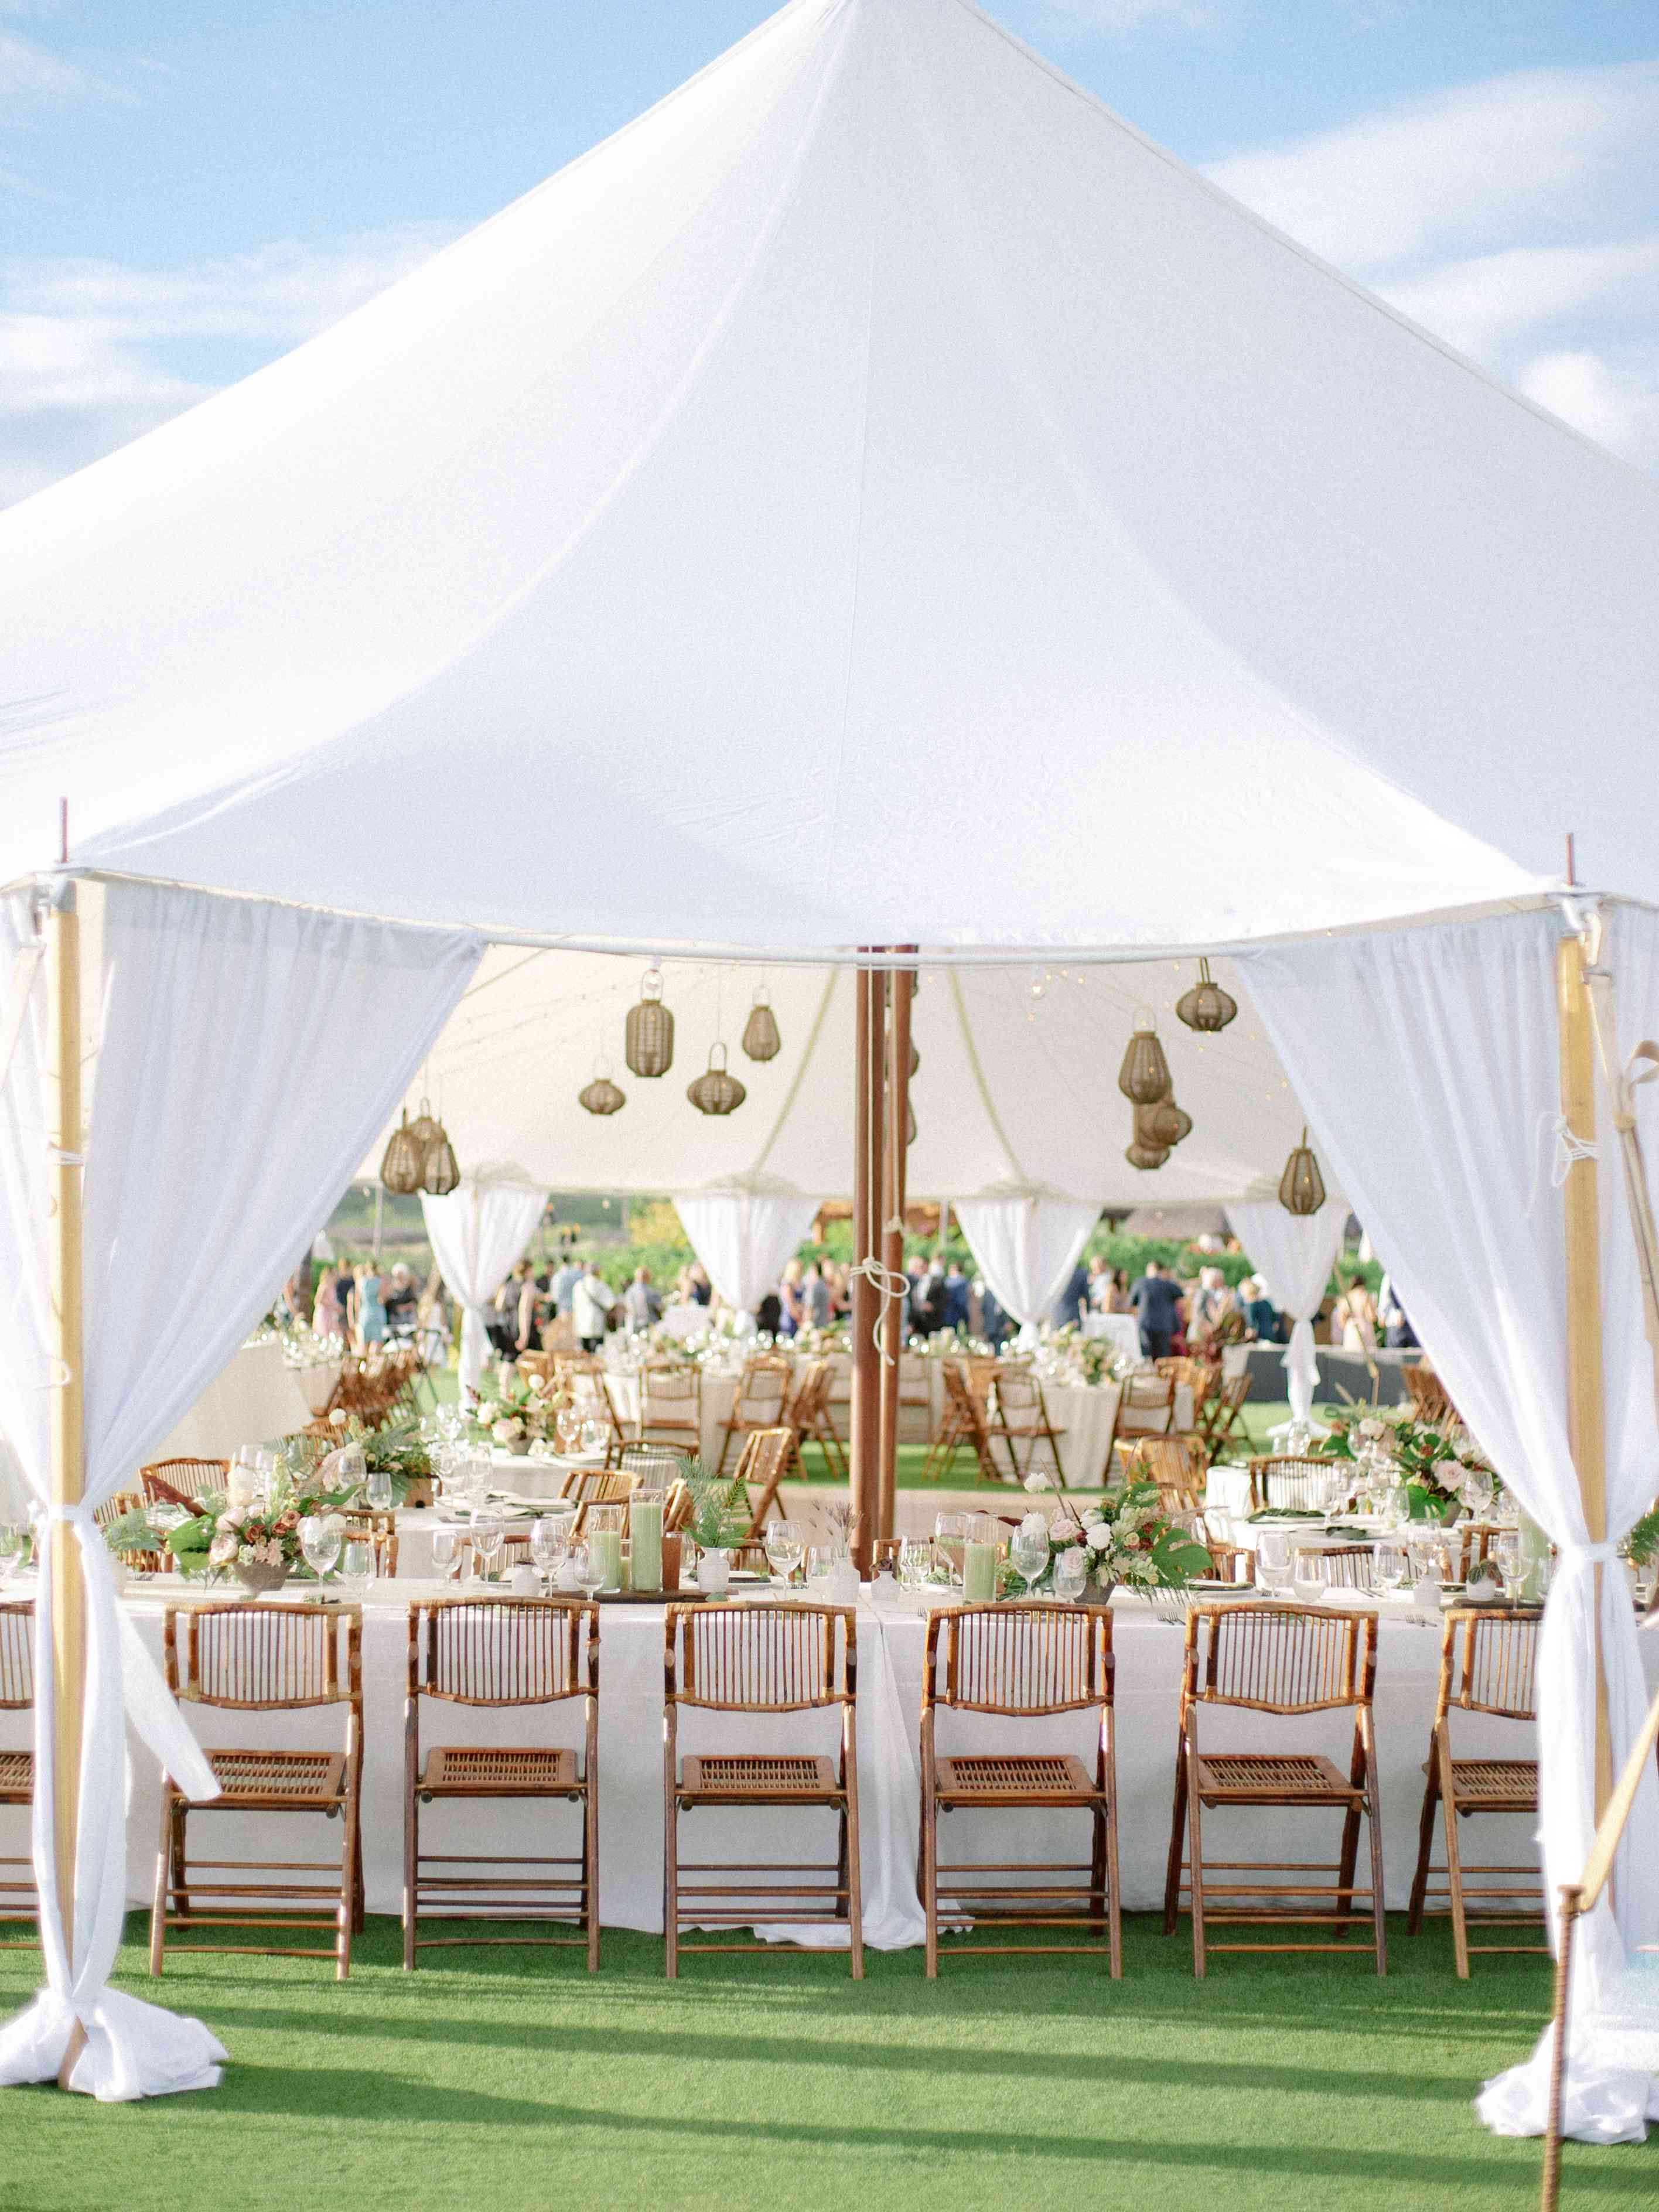 Reception tent from afar